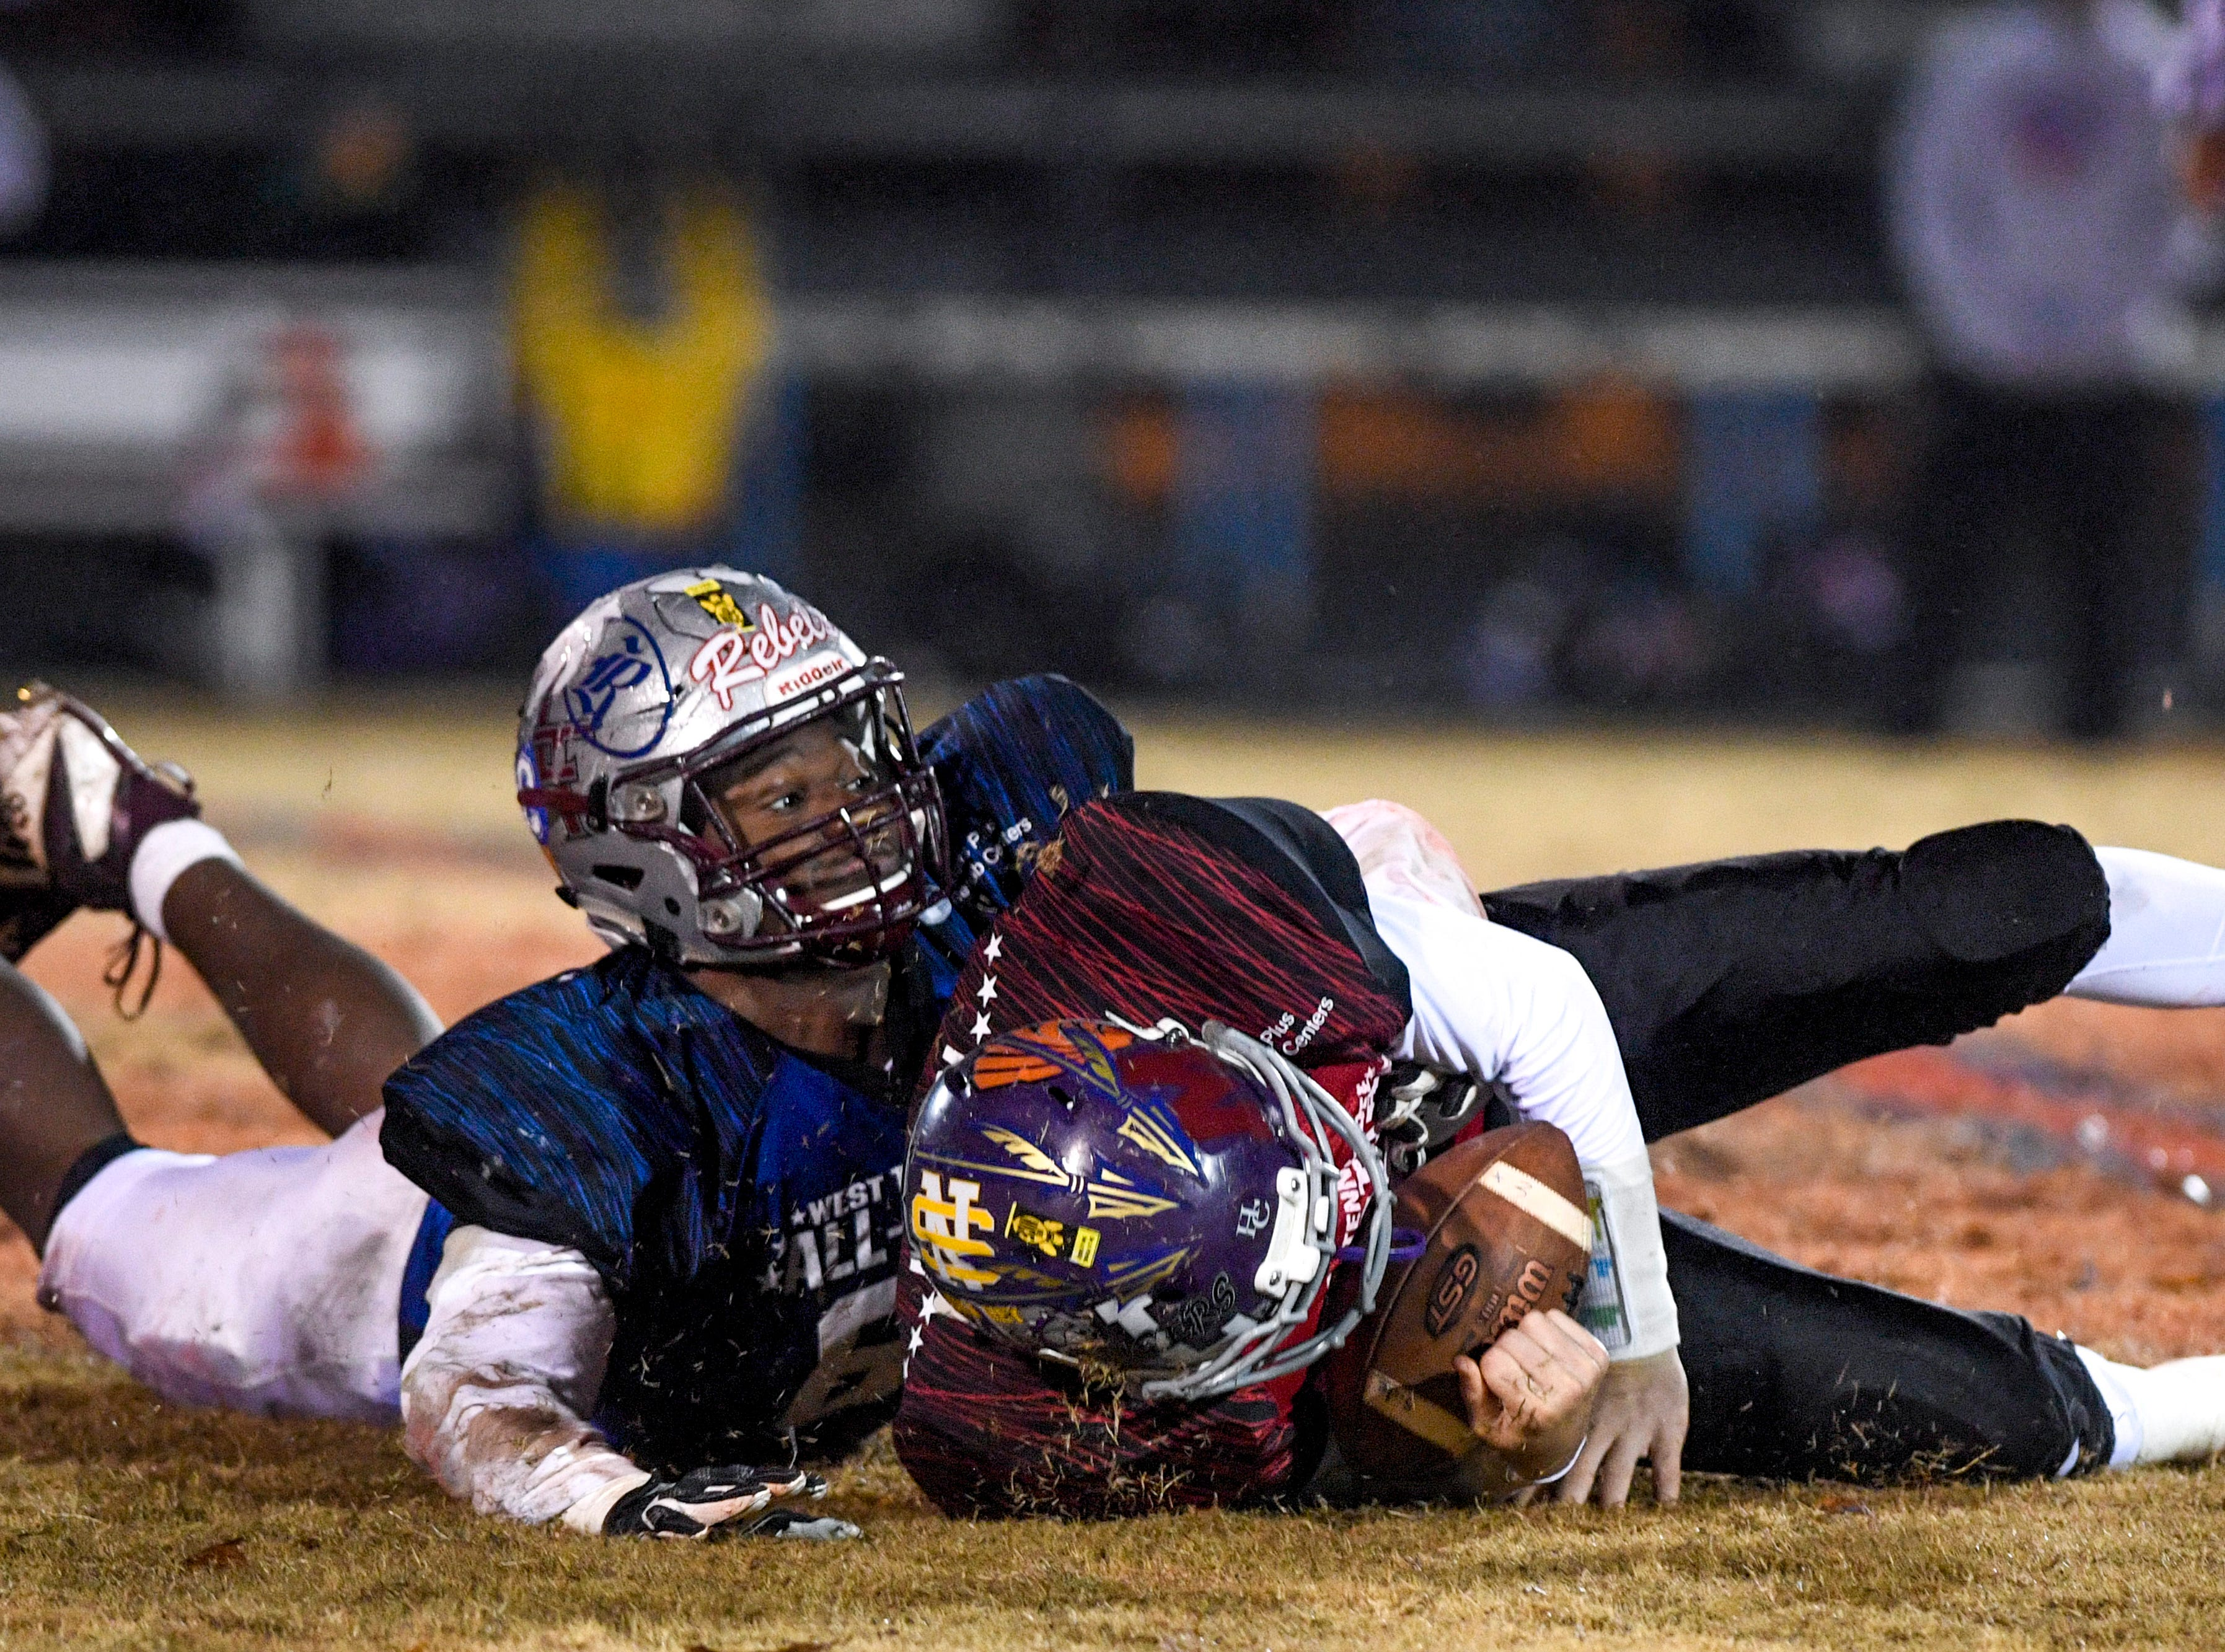 Liberty's Jeremiah Fitzhugh (61) sacks Milan's Taylor Lockhart (9) during the West Tennessee All-Star football game at University School of Jackson in Jackson, Tenn., on Friday, Dec. 7, 2018.